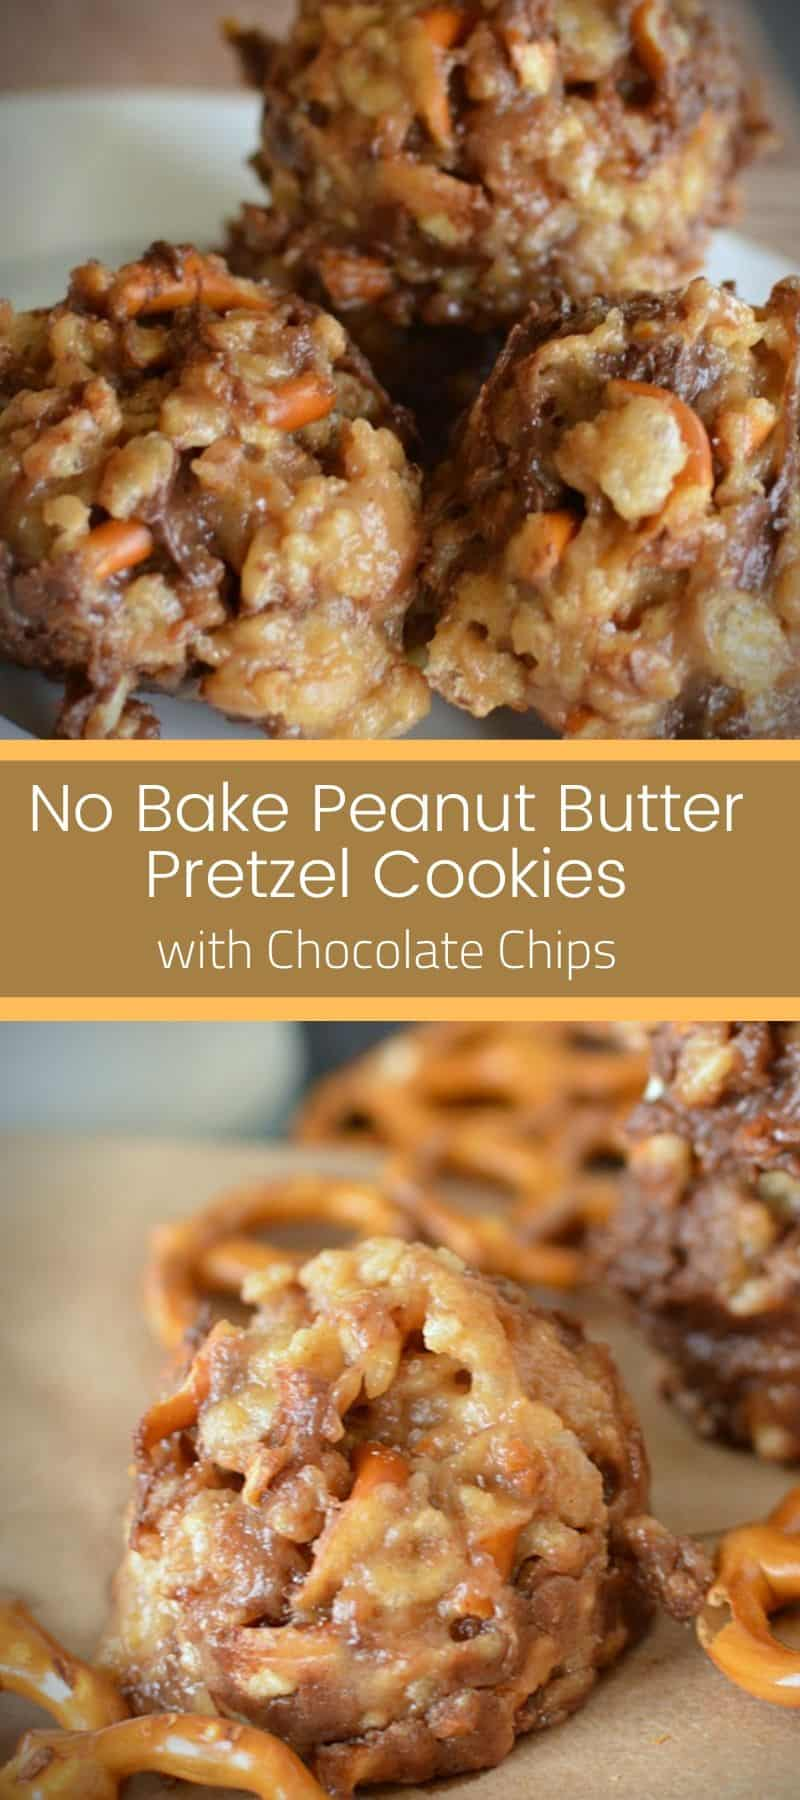 No Bake Peanut Butter Pretzel Cookies with Chocolate Chips 3